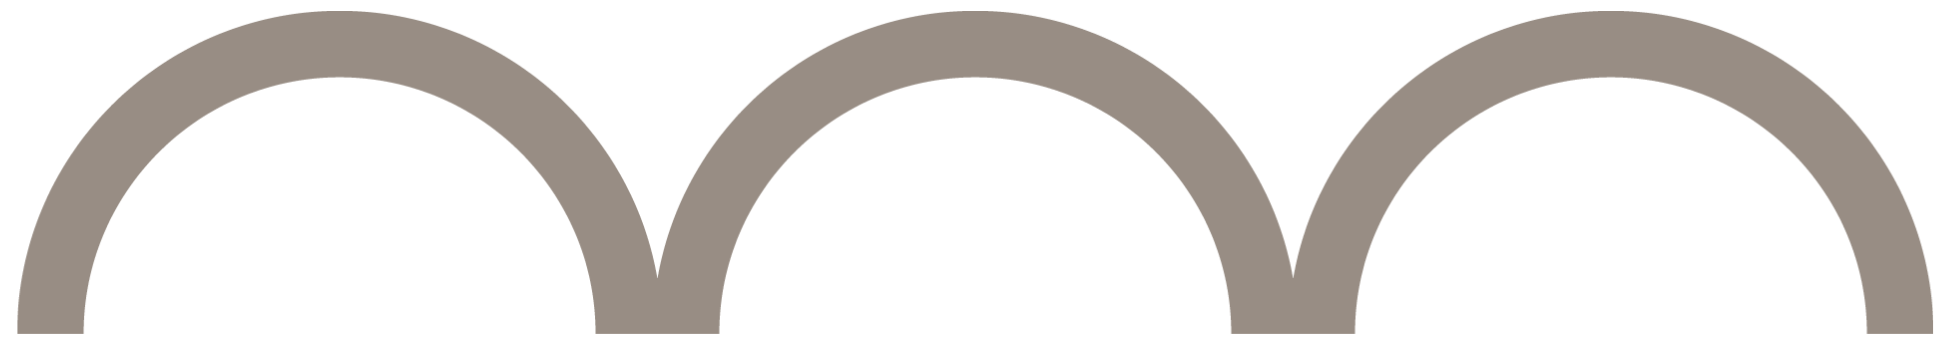 arches for web footer.png